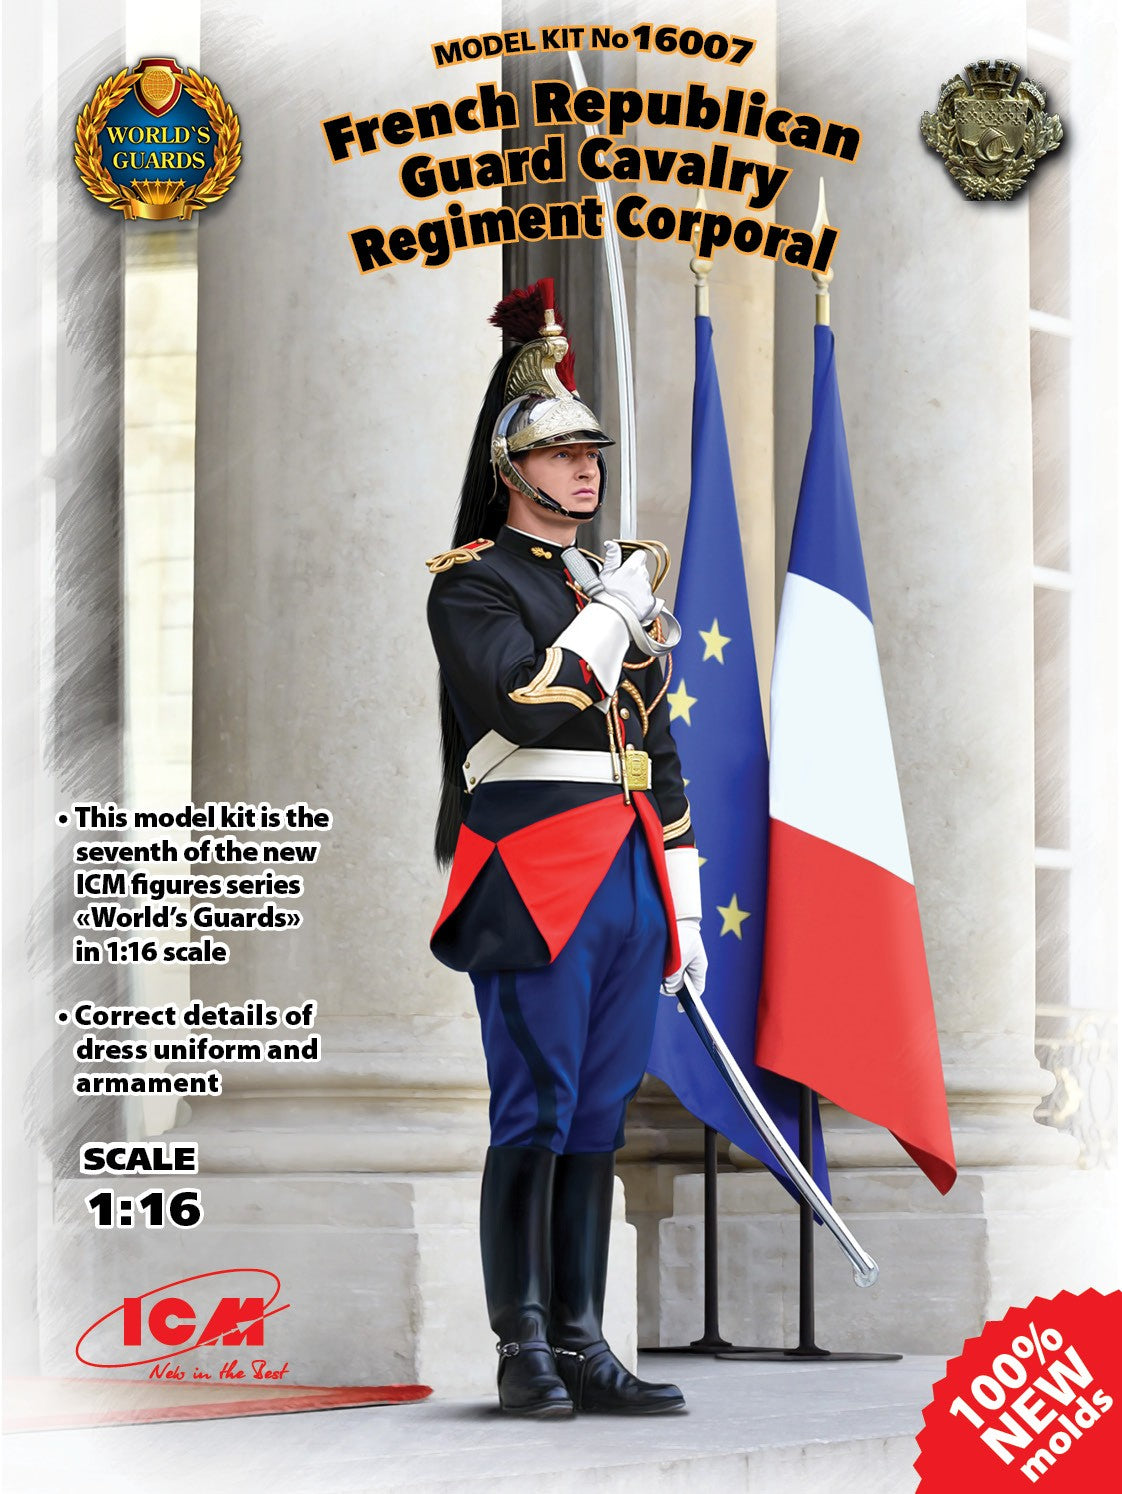 ICM Military Models 1/16 French Republican Guard Cavalry Regiment Corporal (New Tool) Kit